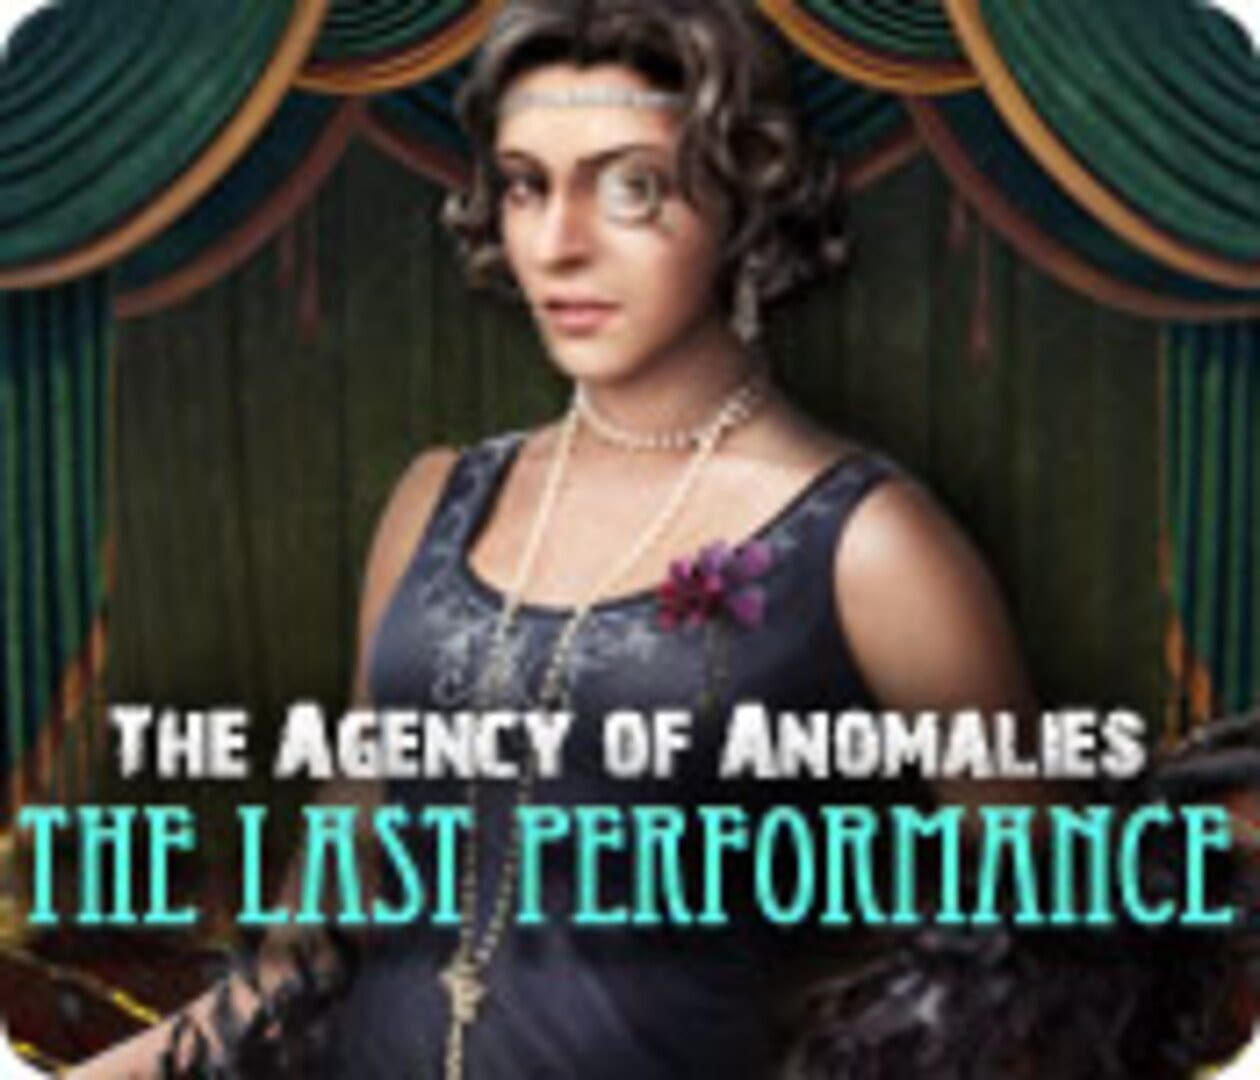 buy The Agency of Anomalies: The Last Performance cd key for all platform